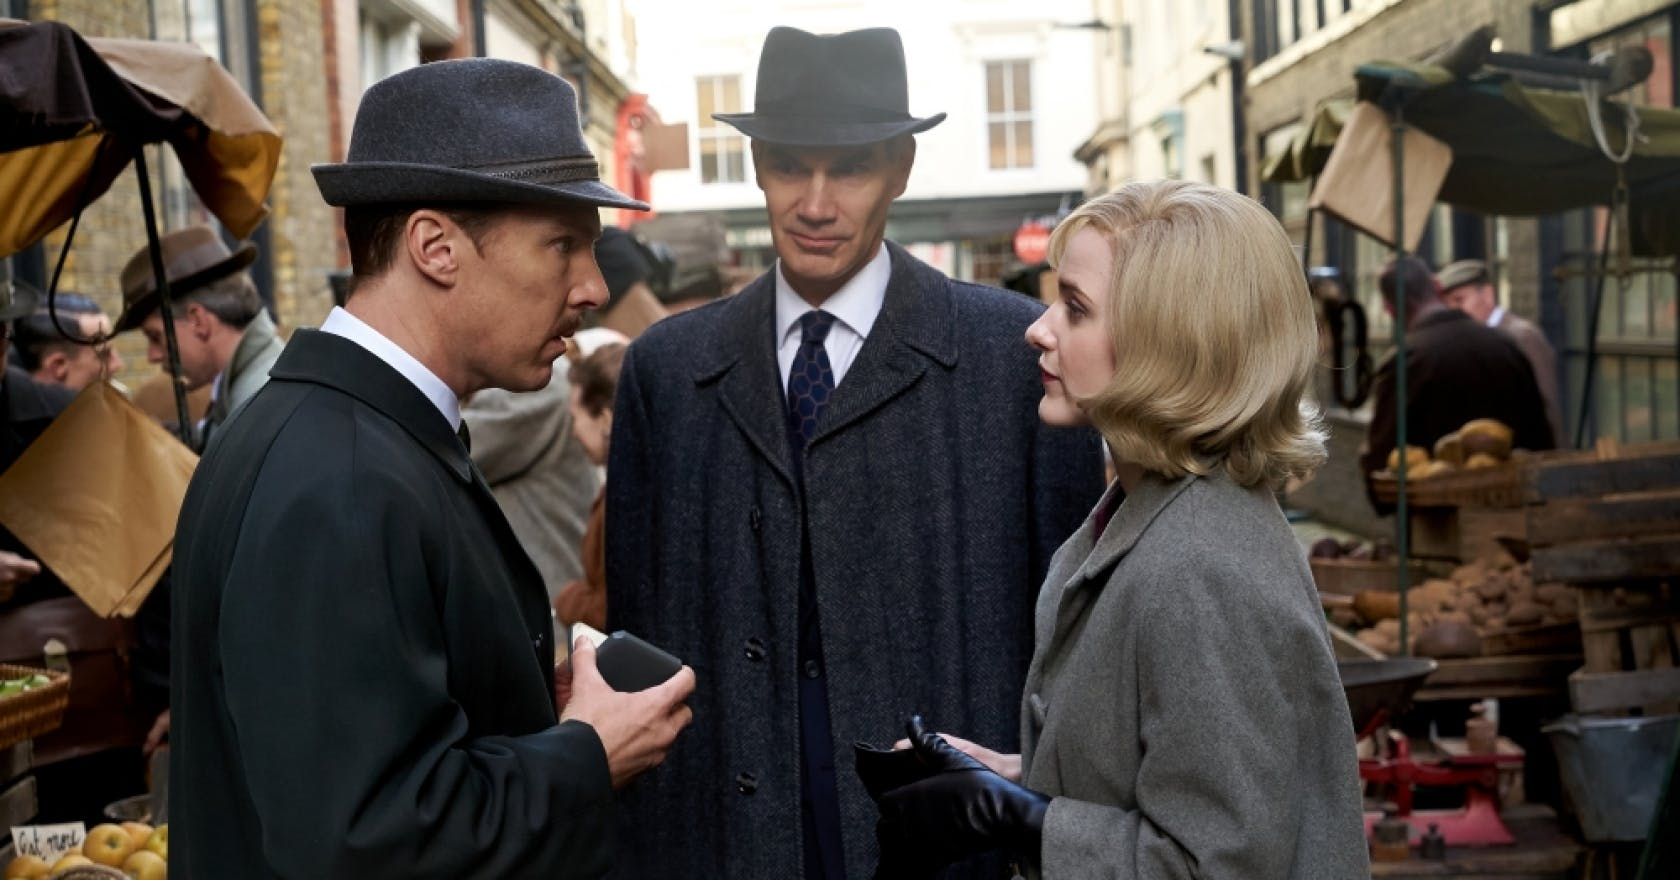 The Courier: Rachel Brosnahan shares first-look photos of spy drama with Benedict Cumberbatch